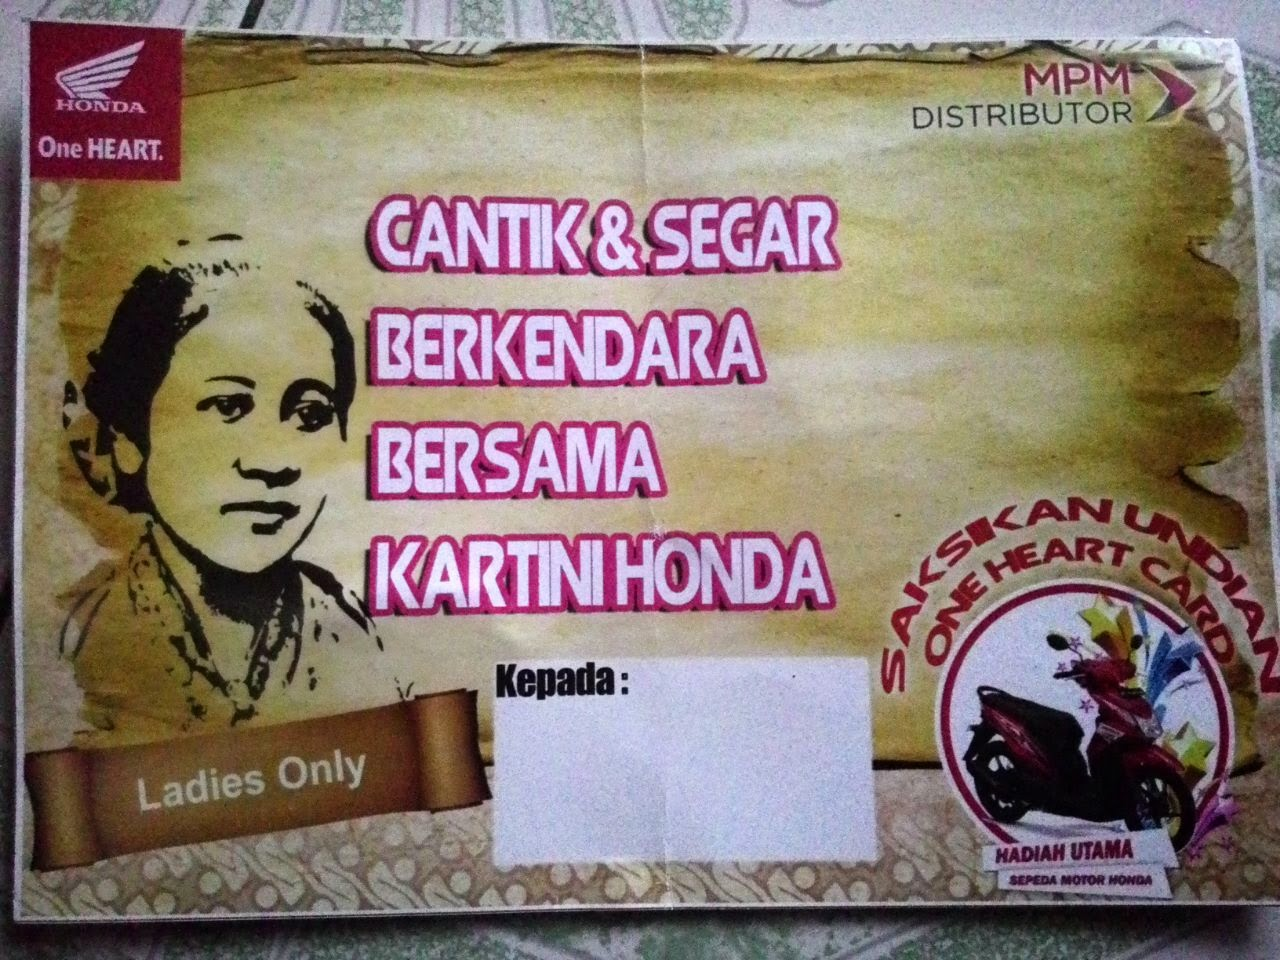 Kartinian ala Honda Motor bersama ladies bikers